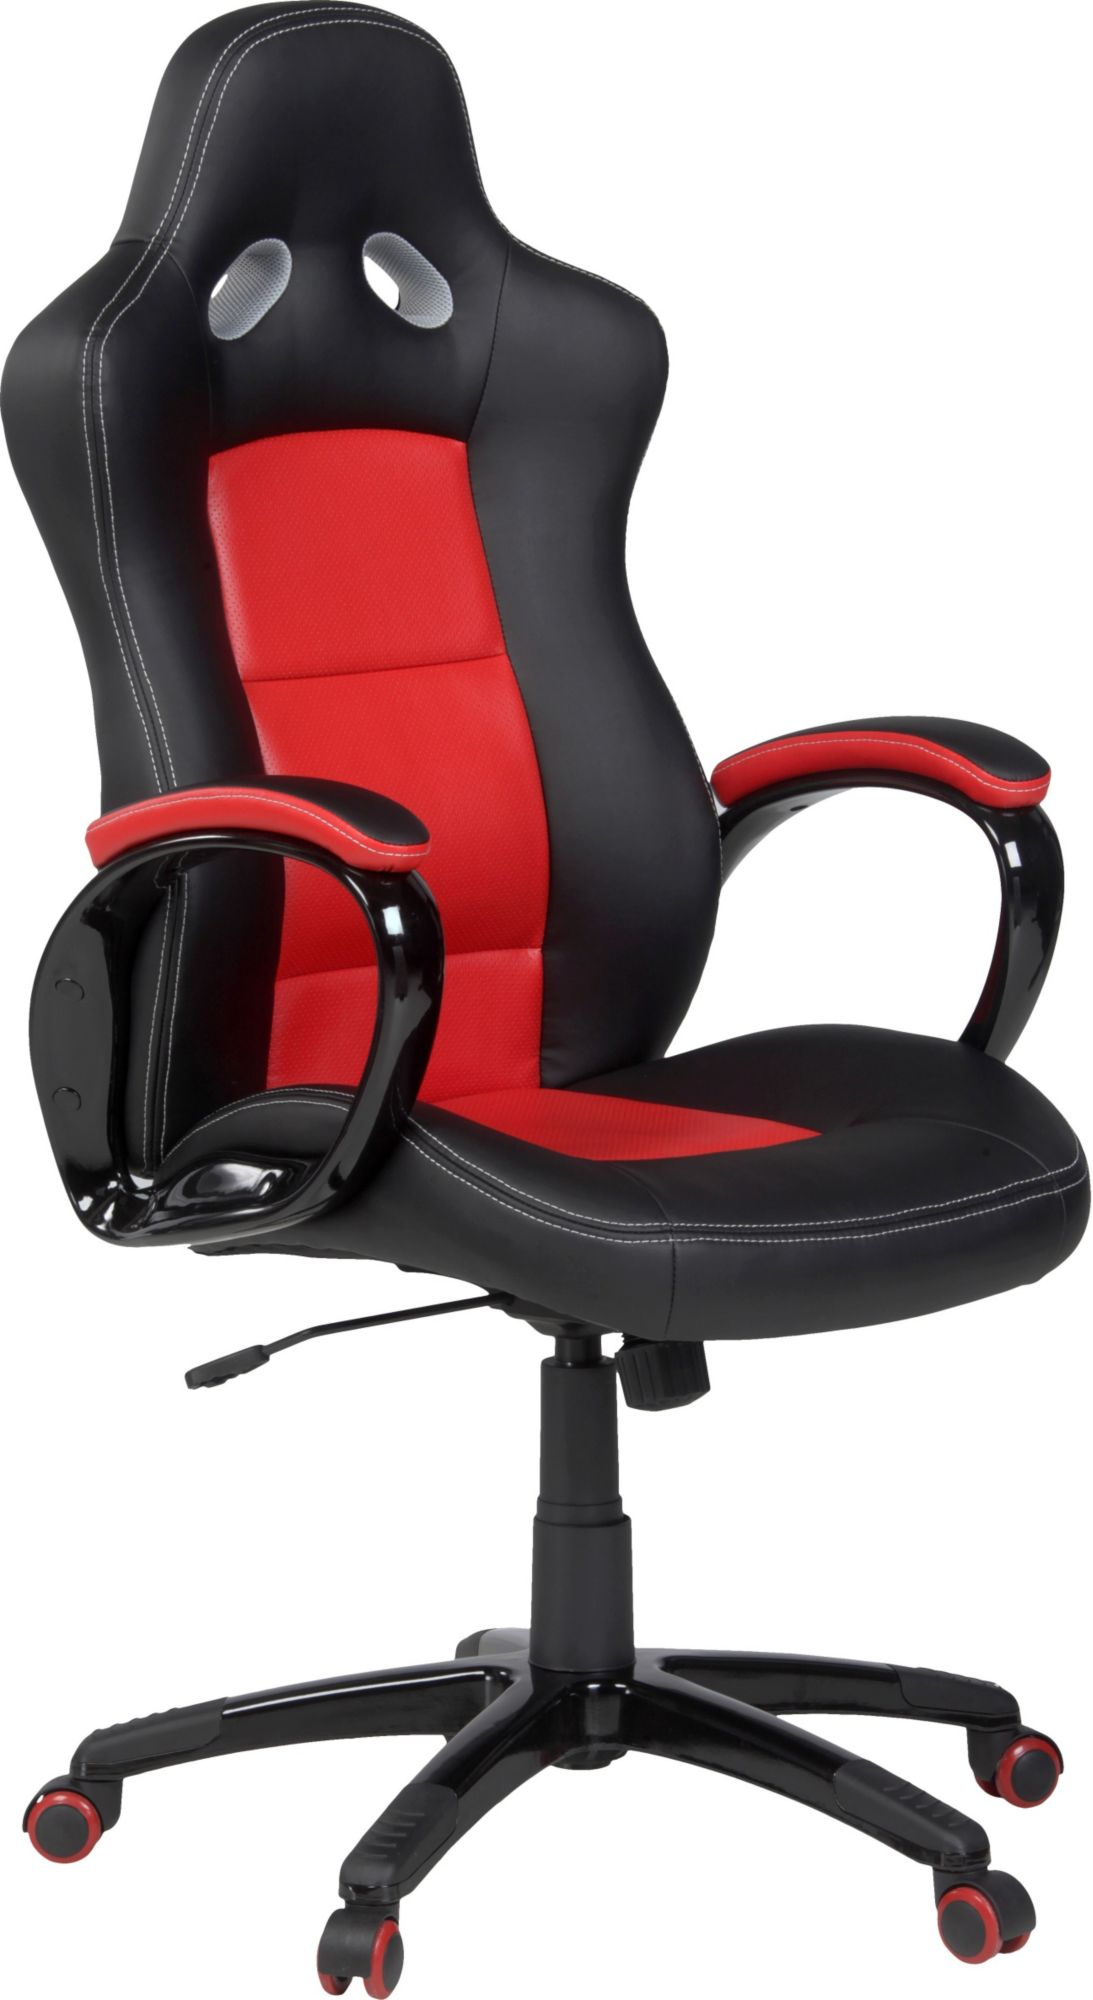 DUOCOLLECTION Duo Collection Gaming Chair »Finning«